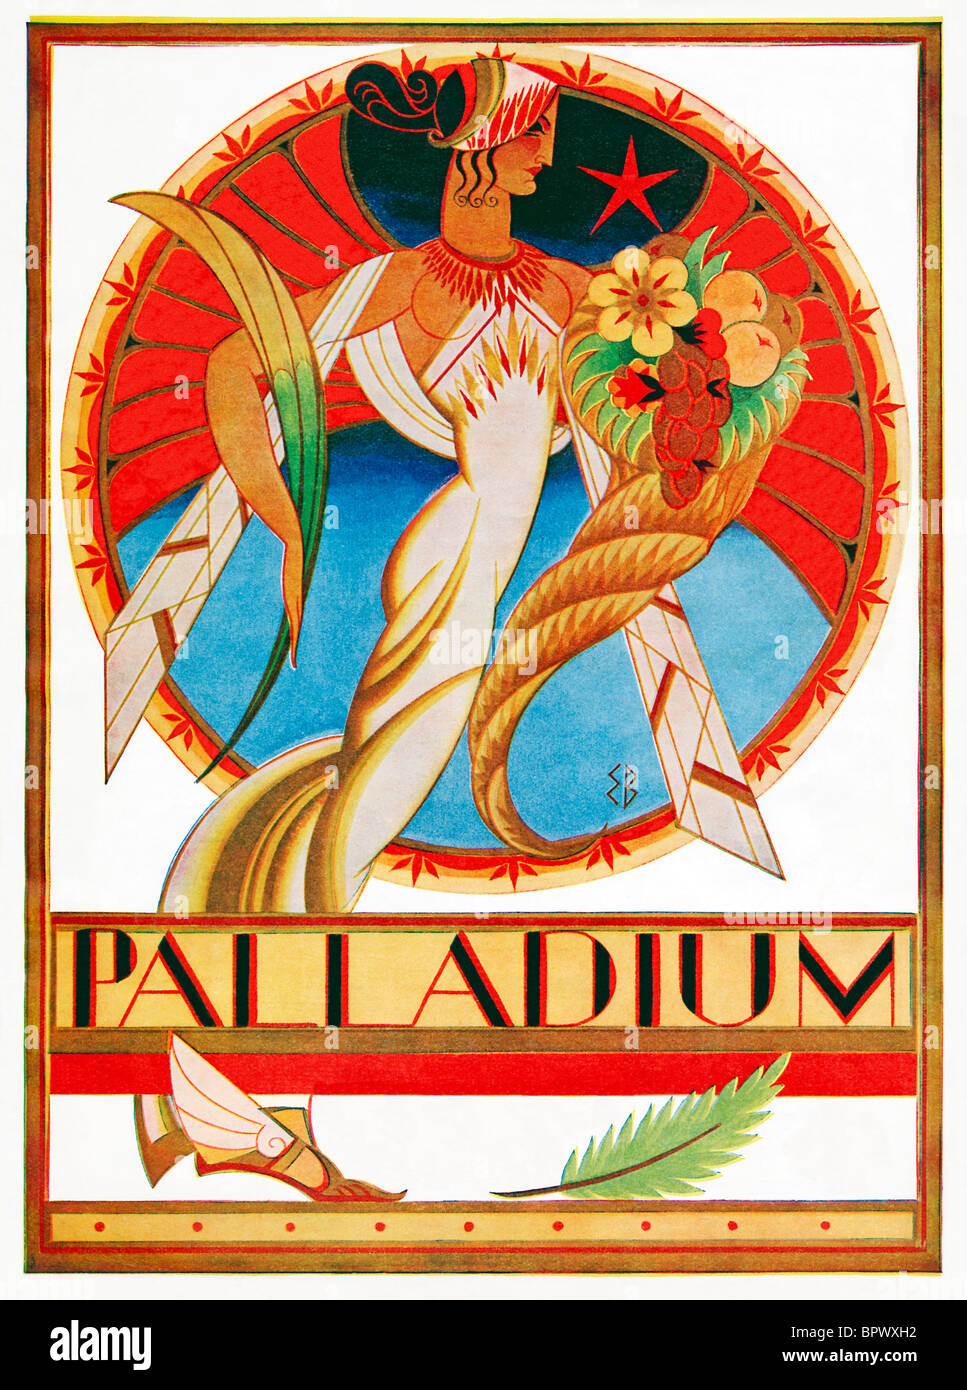 Palladium, 1930 Art Deco illustration for the cover of a programme for the famous theatre in the West End of London - Stock Image